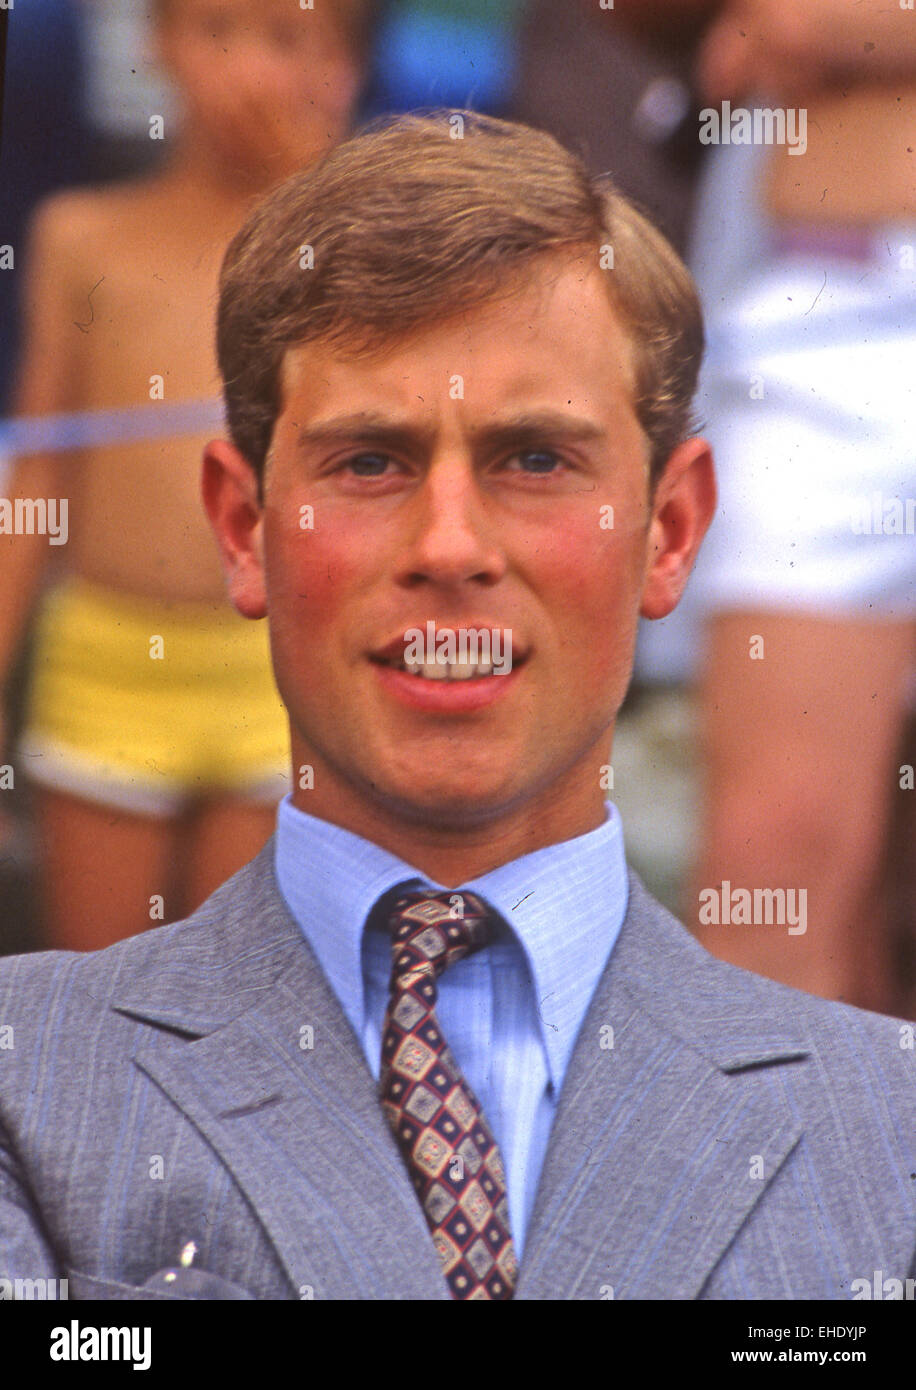 PRINCE EDWARD, Earl of Wessex, about 1985 - Stock Image